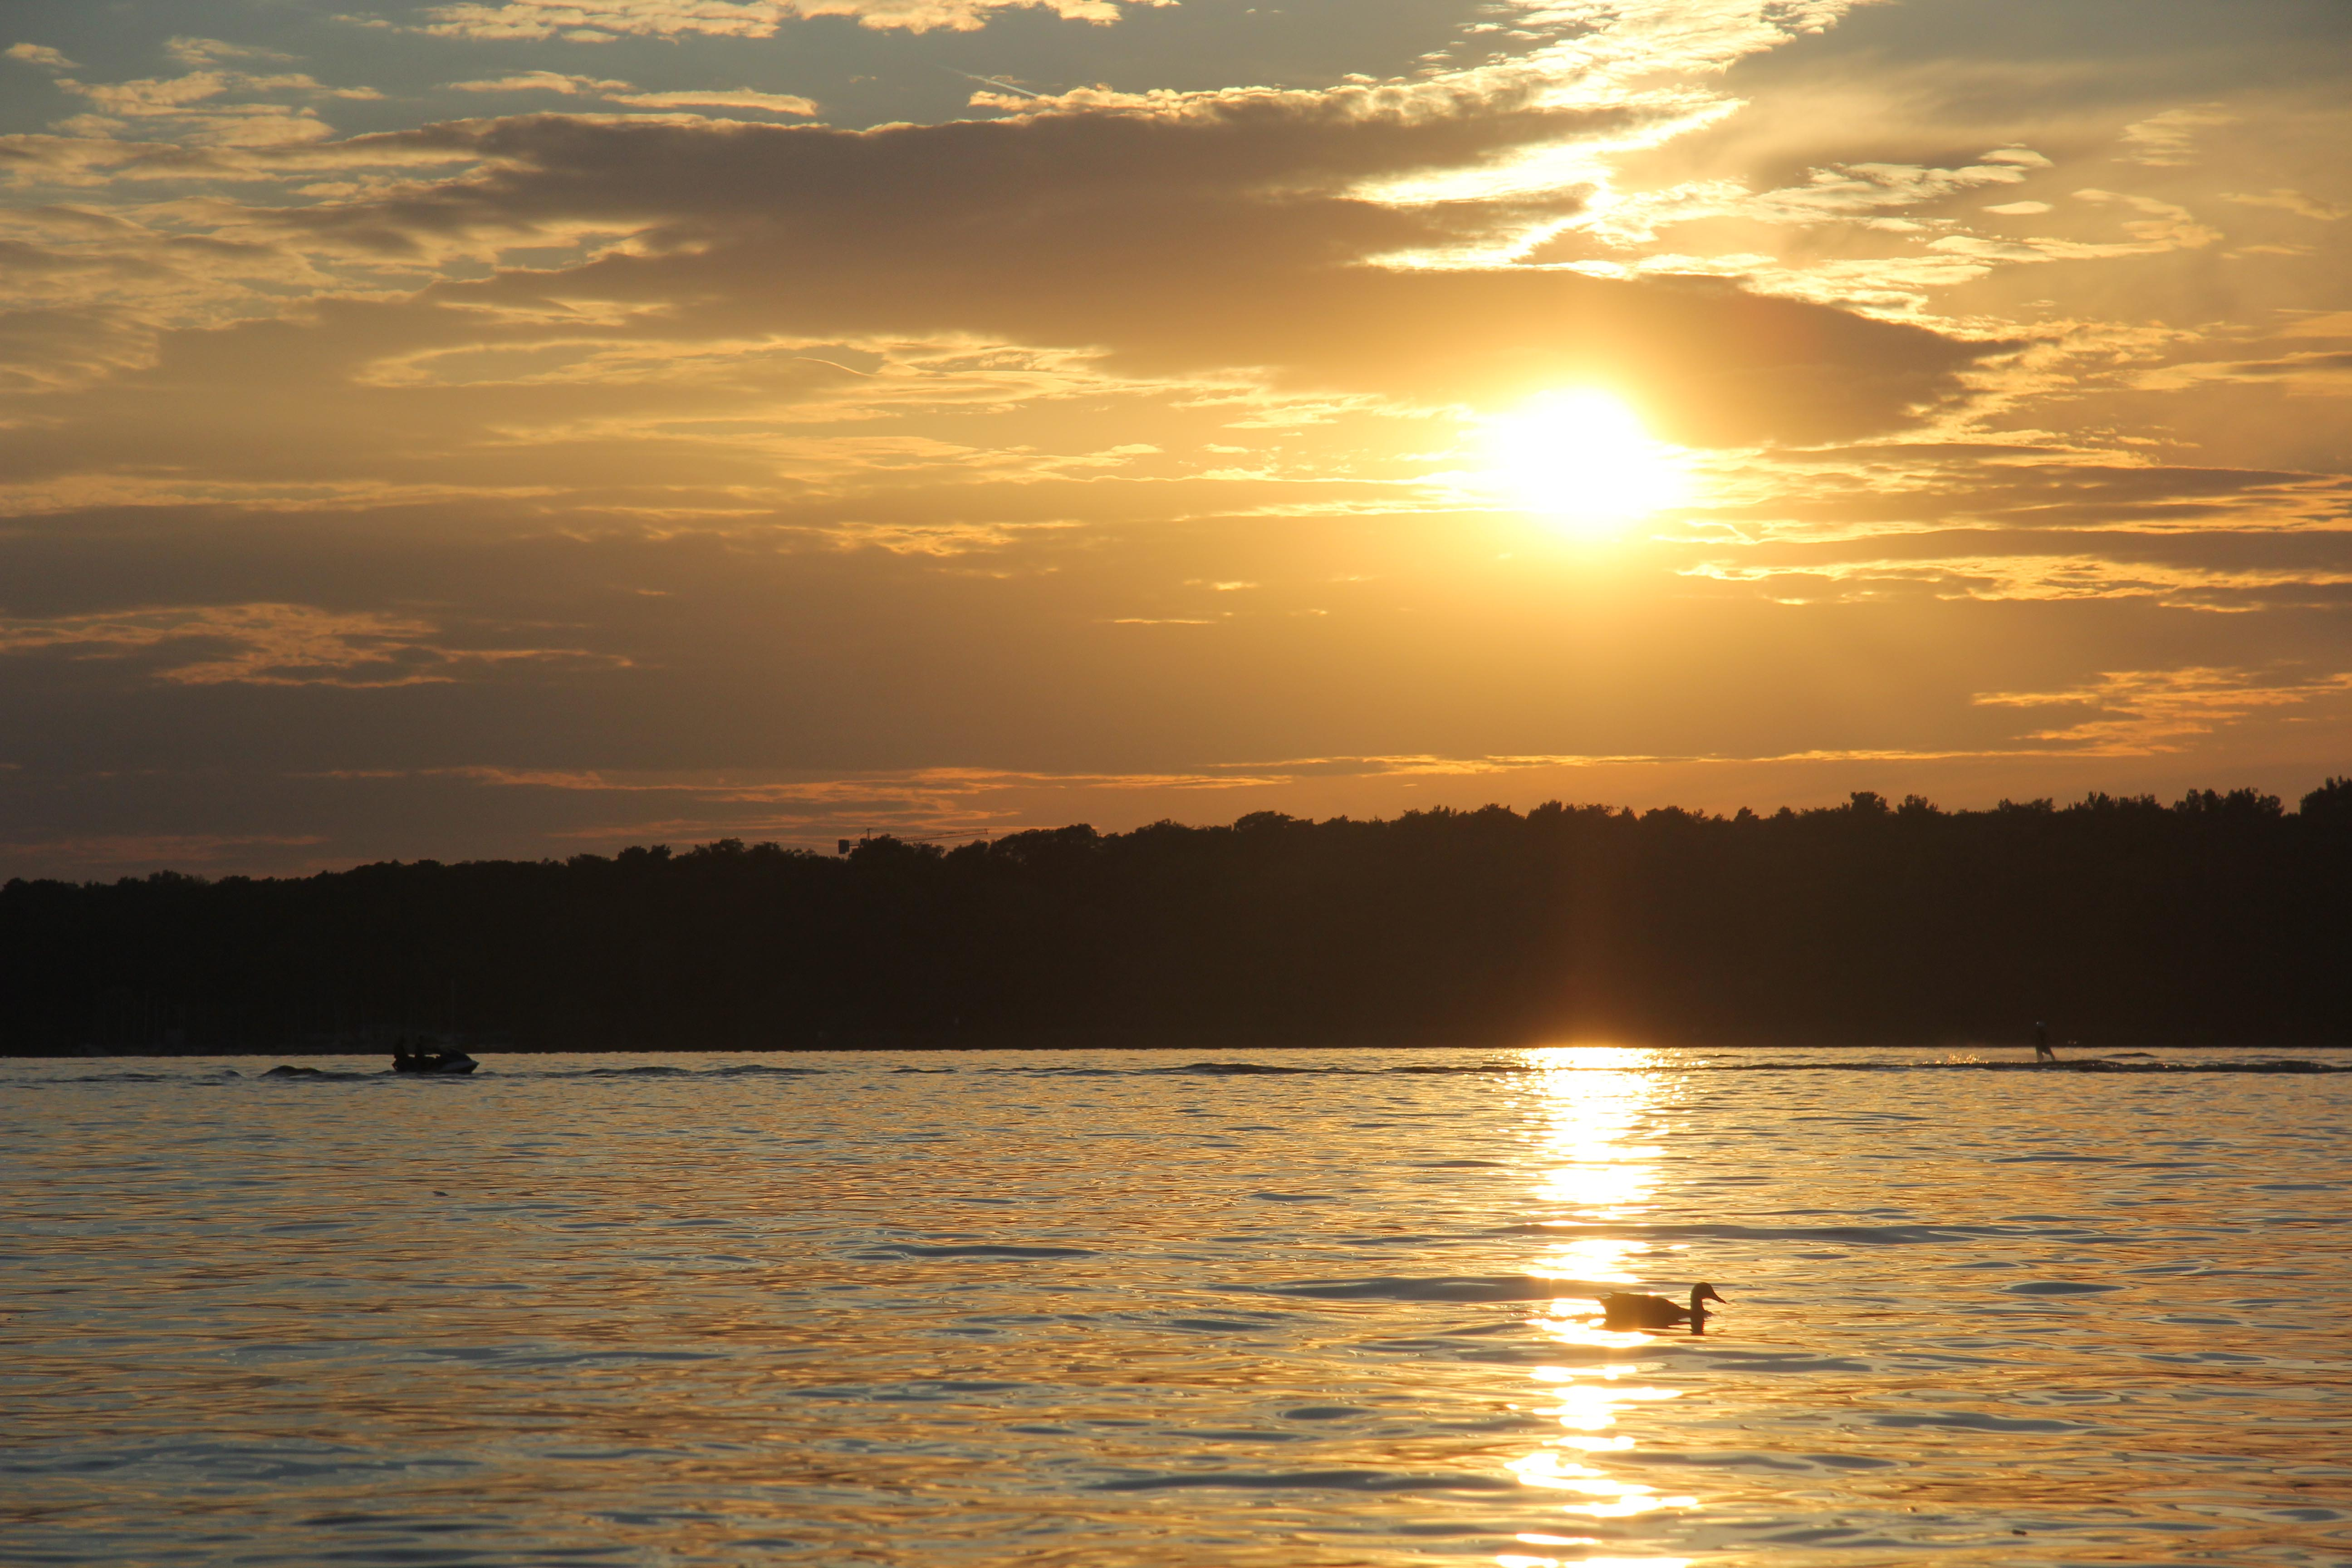 The sunset over the lake at Wannsee in Berlin